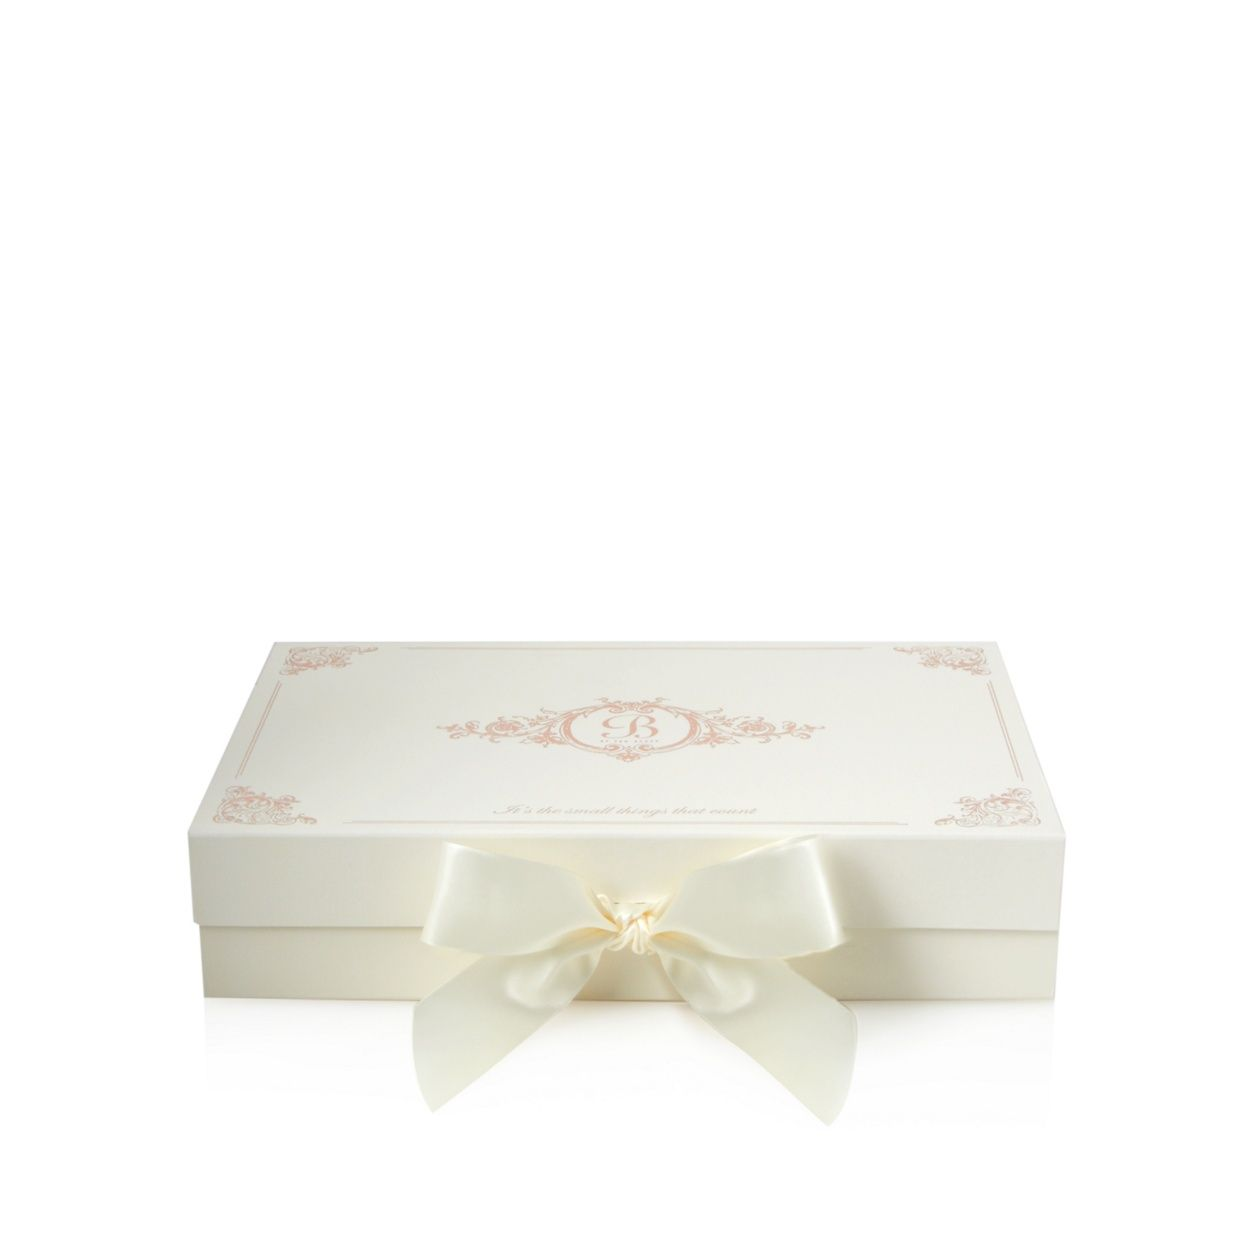 B By Ted Baker Cream Luxury Gift Box With Tissue Paper At Debenhams